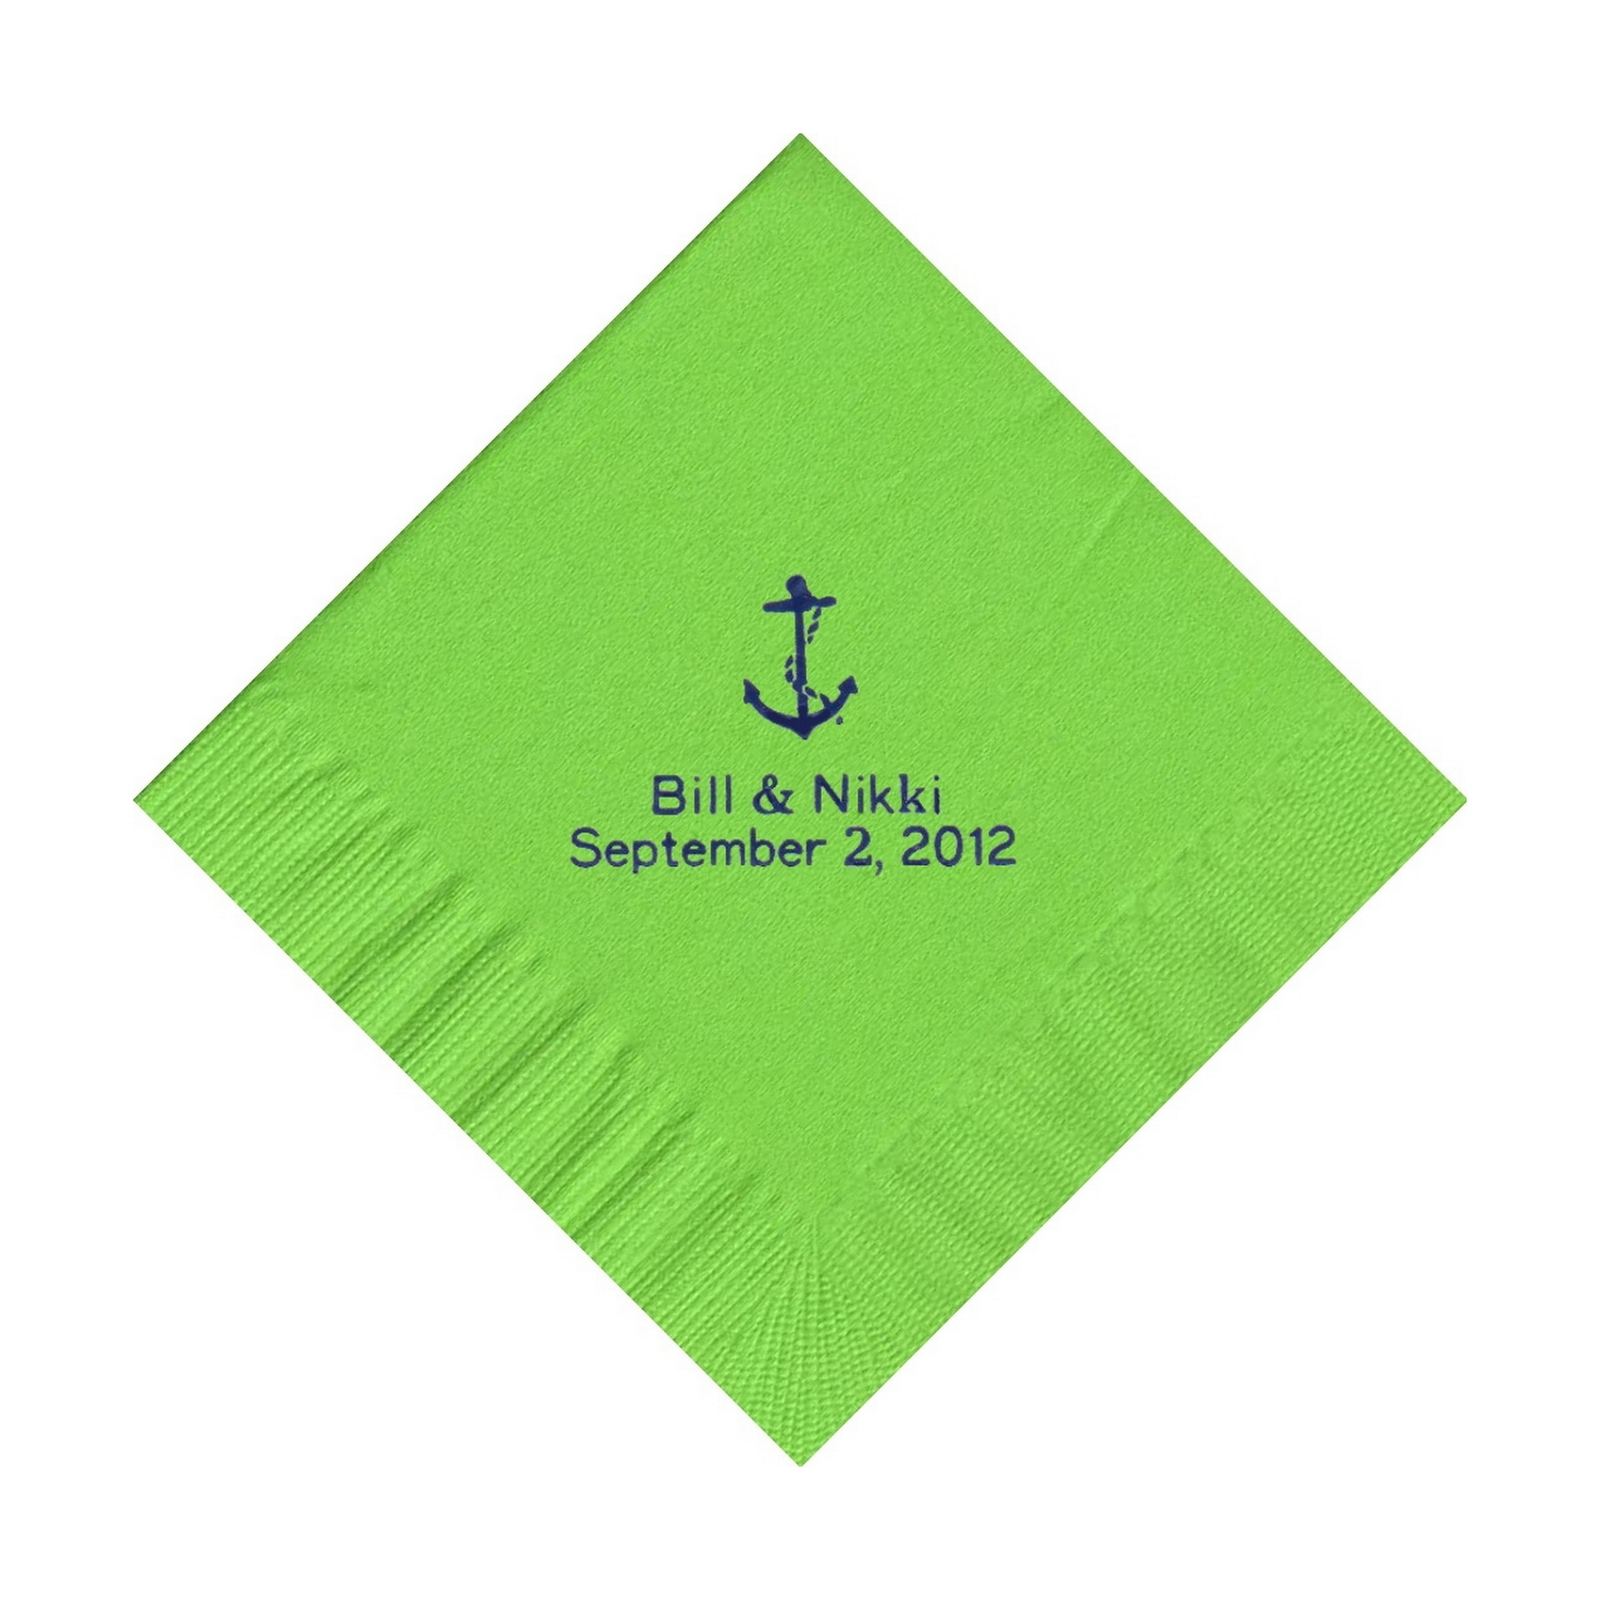 50 PERSONALIZED anchor printed BEVERAGE cocktail NAPKINS